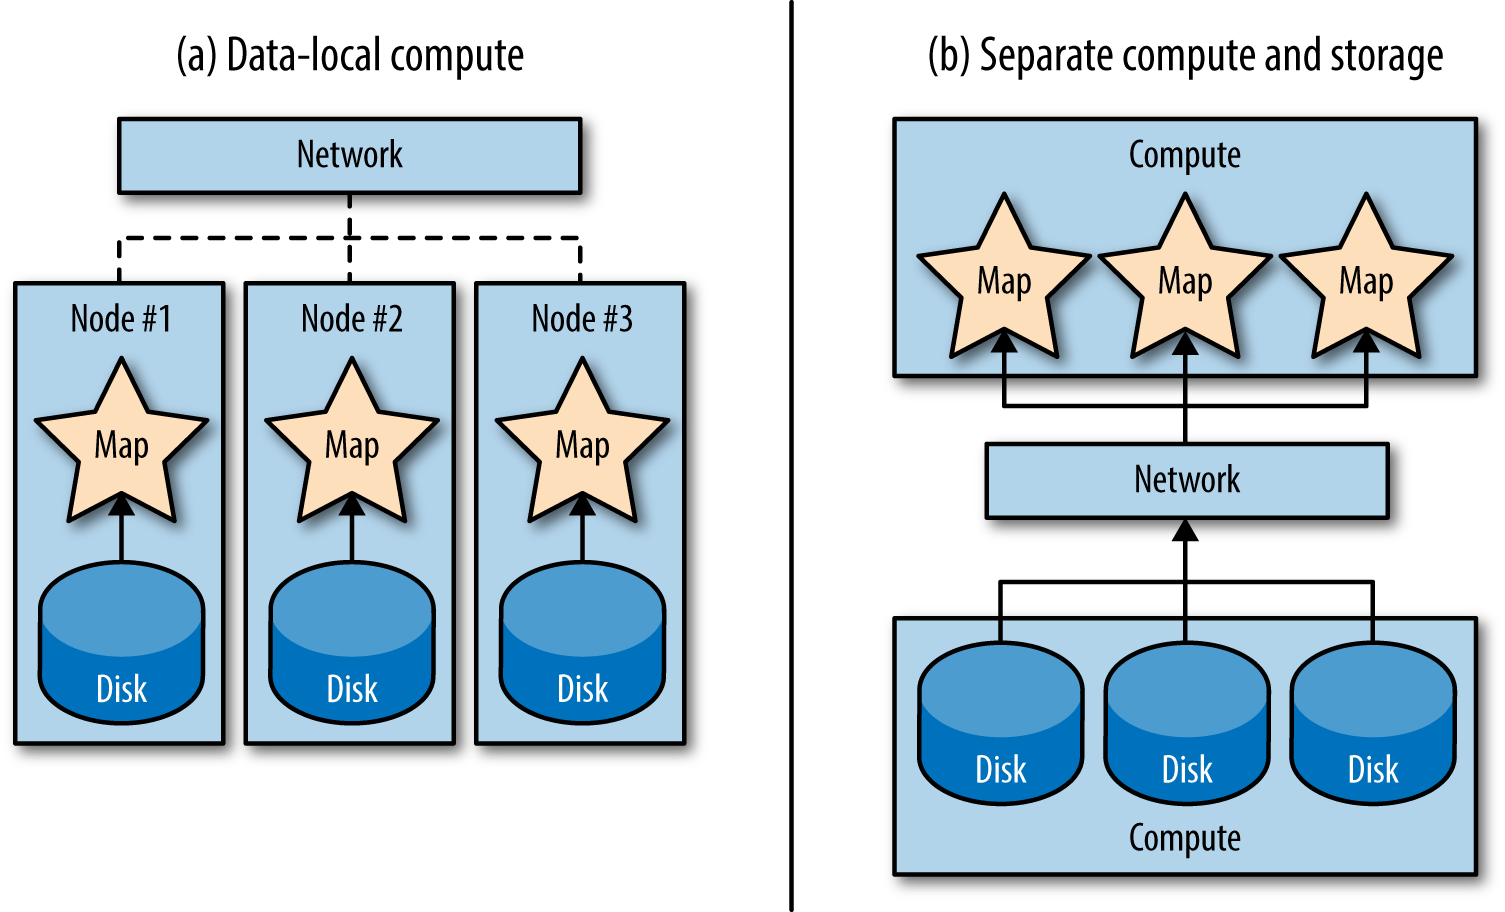 Data locality is a radical shift from separating storage and compute, which at one point had been a popular way of handling large-scale data systems. (a) In data-local compute, the map tasks are pulling data from the local disks and not using the network at all. (b) In separate compute and storage, all of the data passes through the network when you wish to process it.